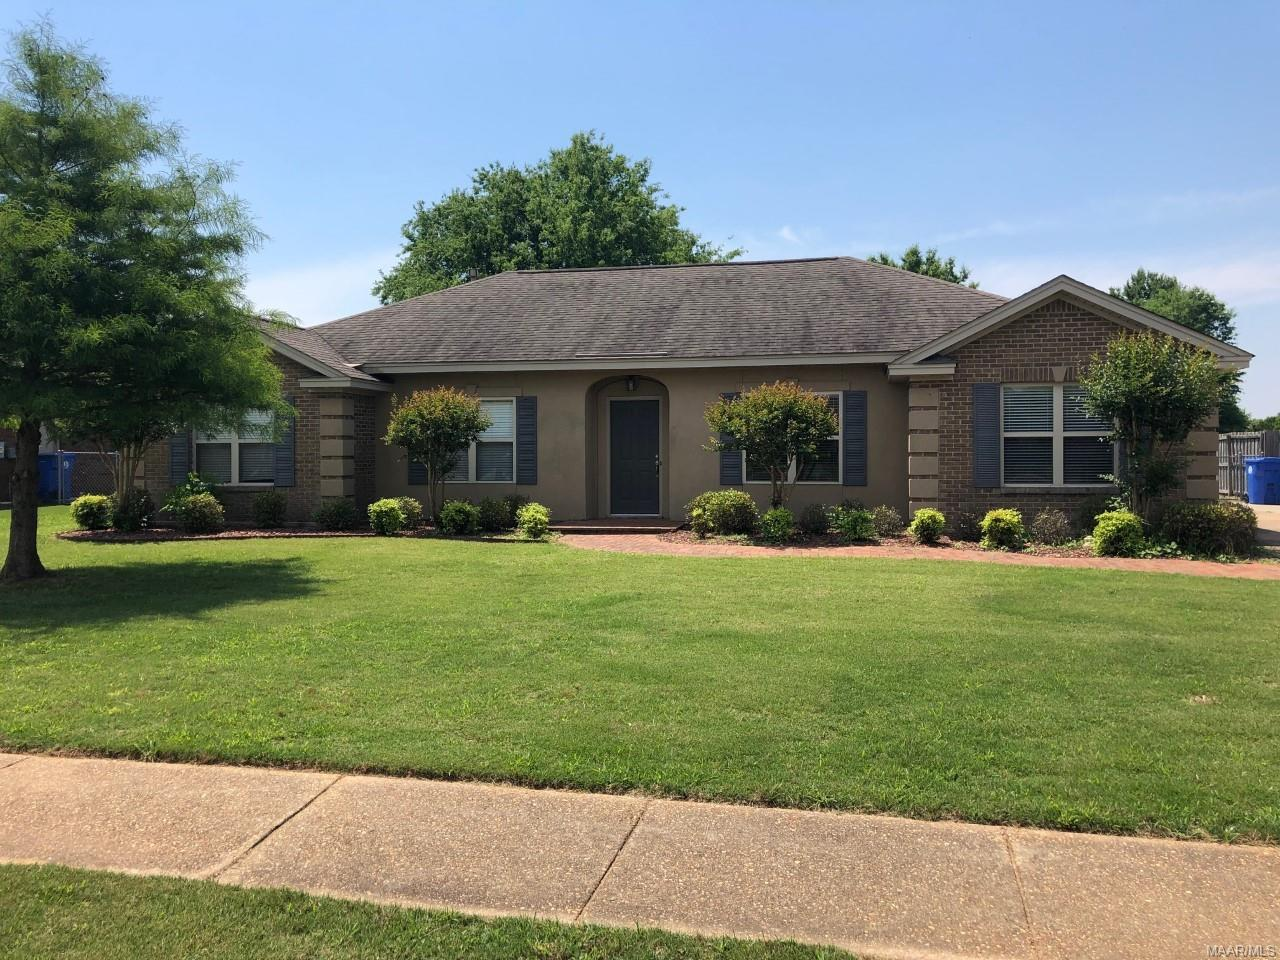 1818 TARA Drive, Prattville, Alabama 36066, 3 Bedrooms Bedrooms, 10 Rooms Rooms,2 BathroomsBathrooms,Residential Lease,For Sale,1818 TARA Drive,479977